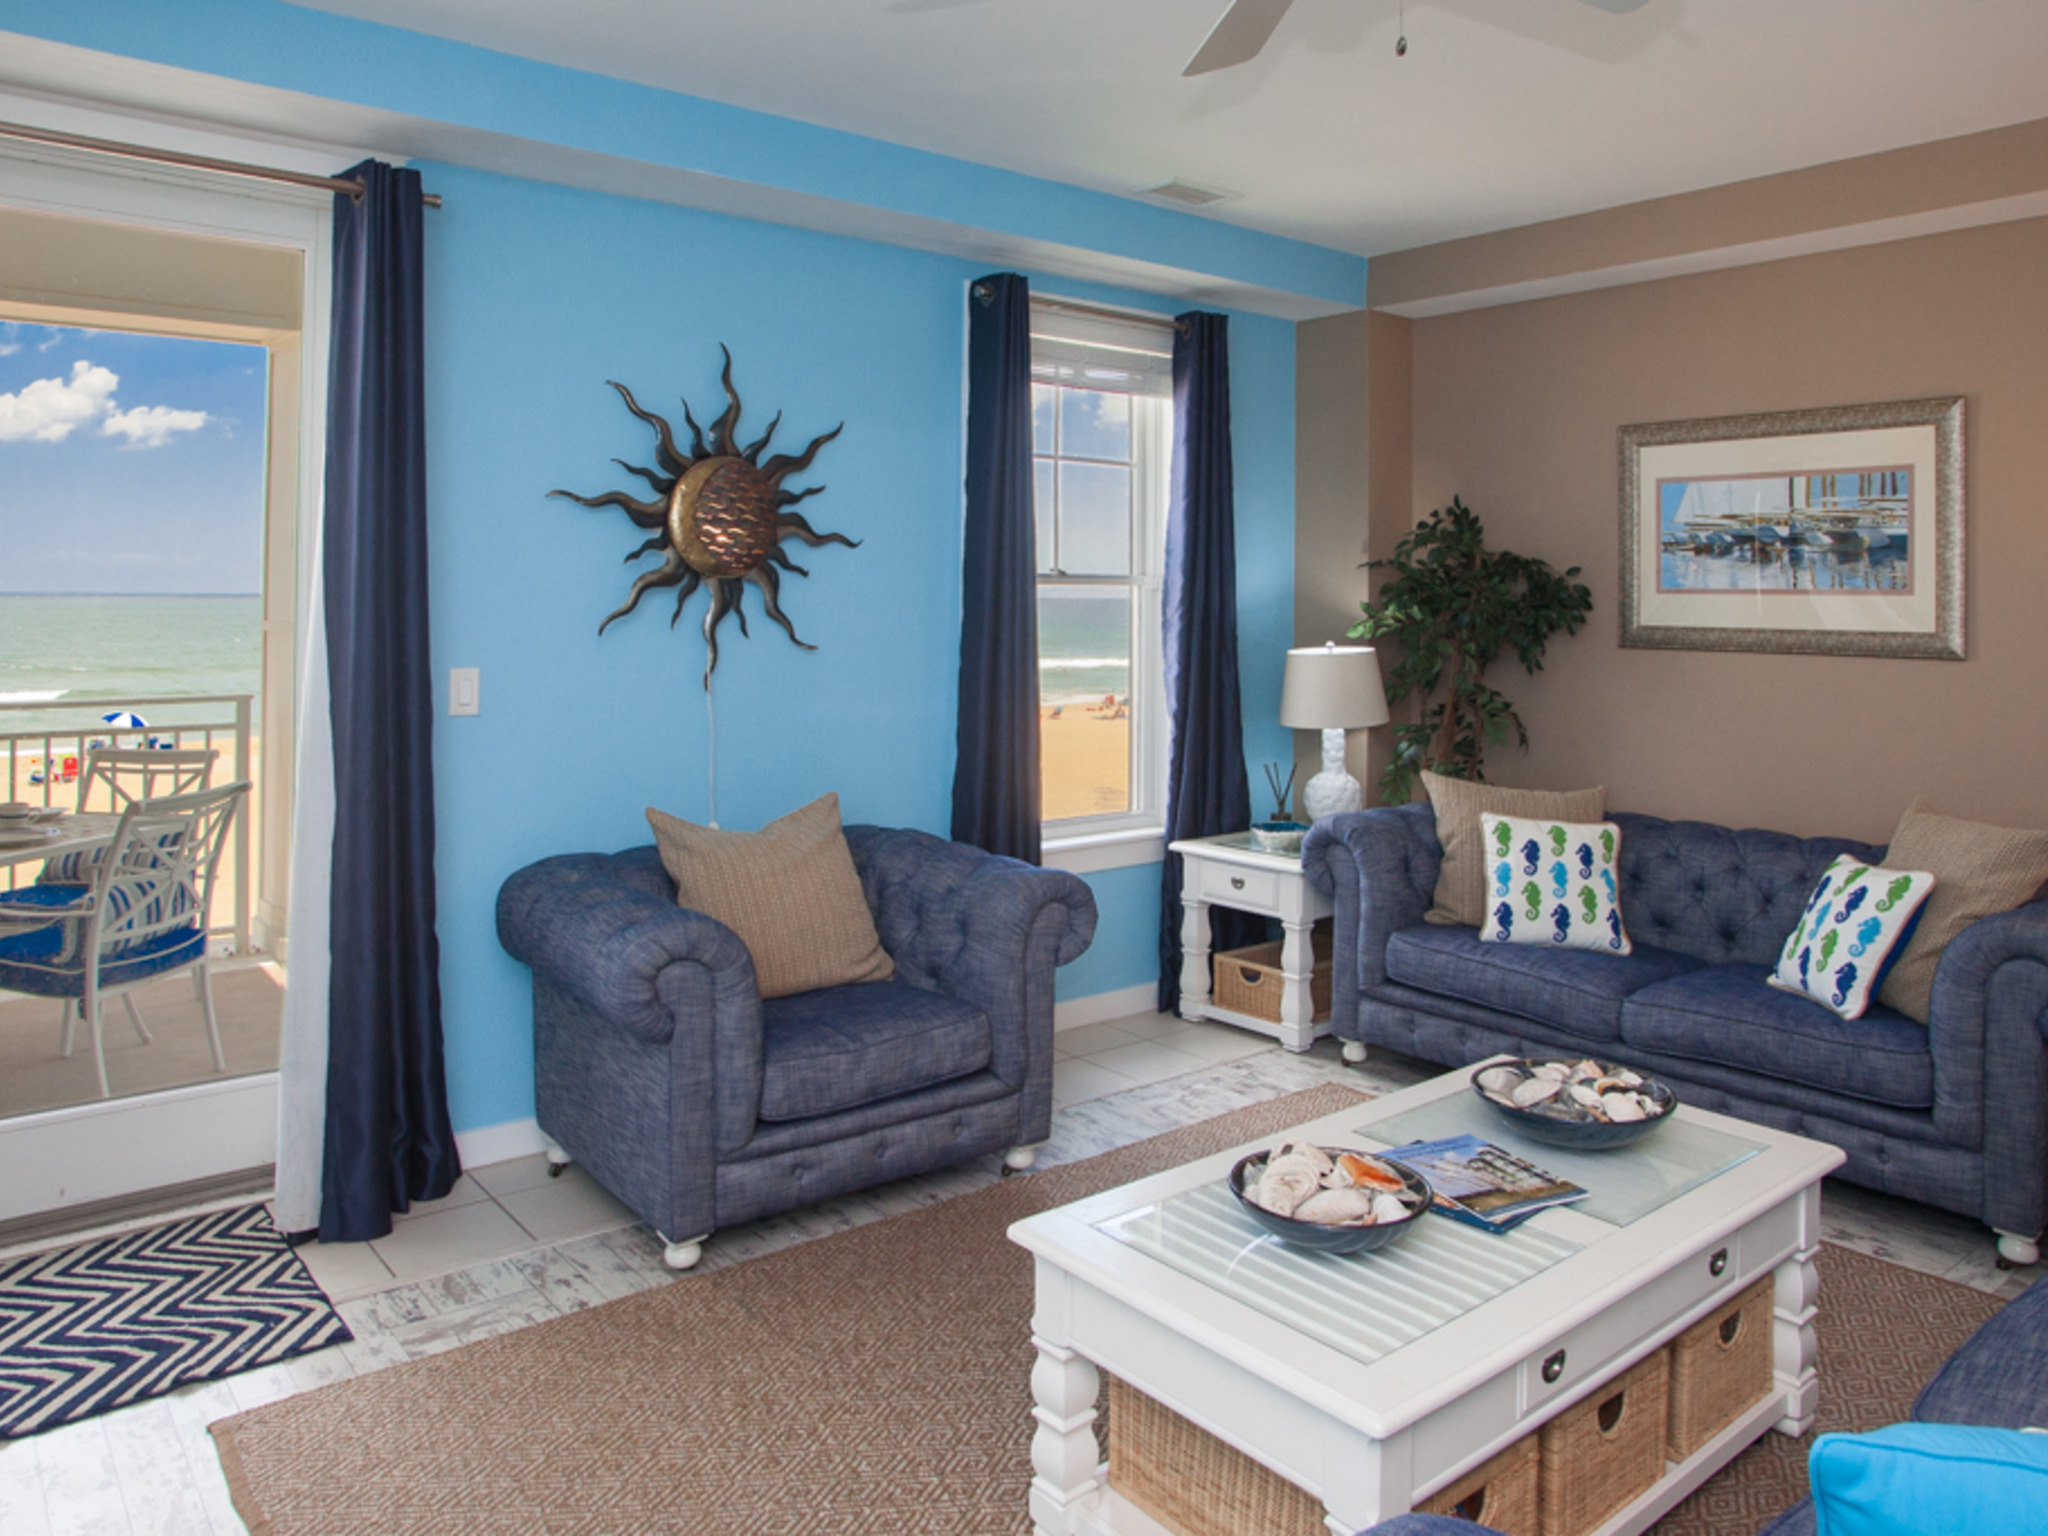 A105 grand bleu 3 bedroom condo virginia beach va - 3 bedroom suites in virginia beach ...